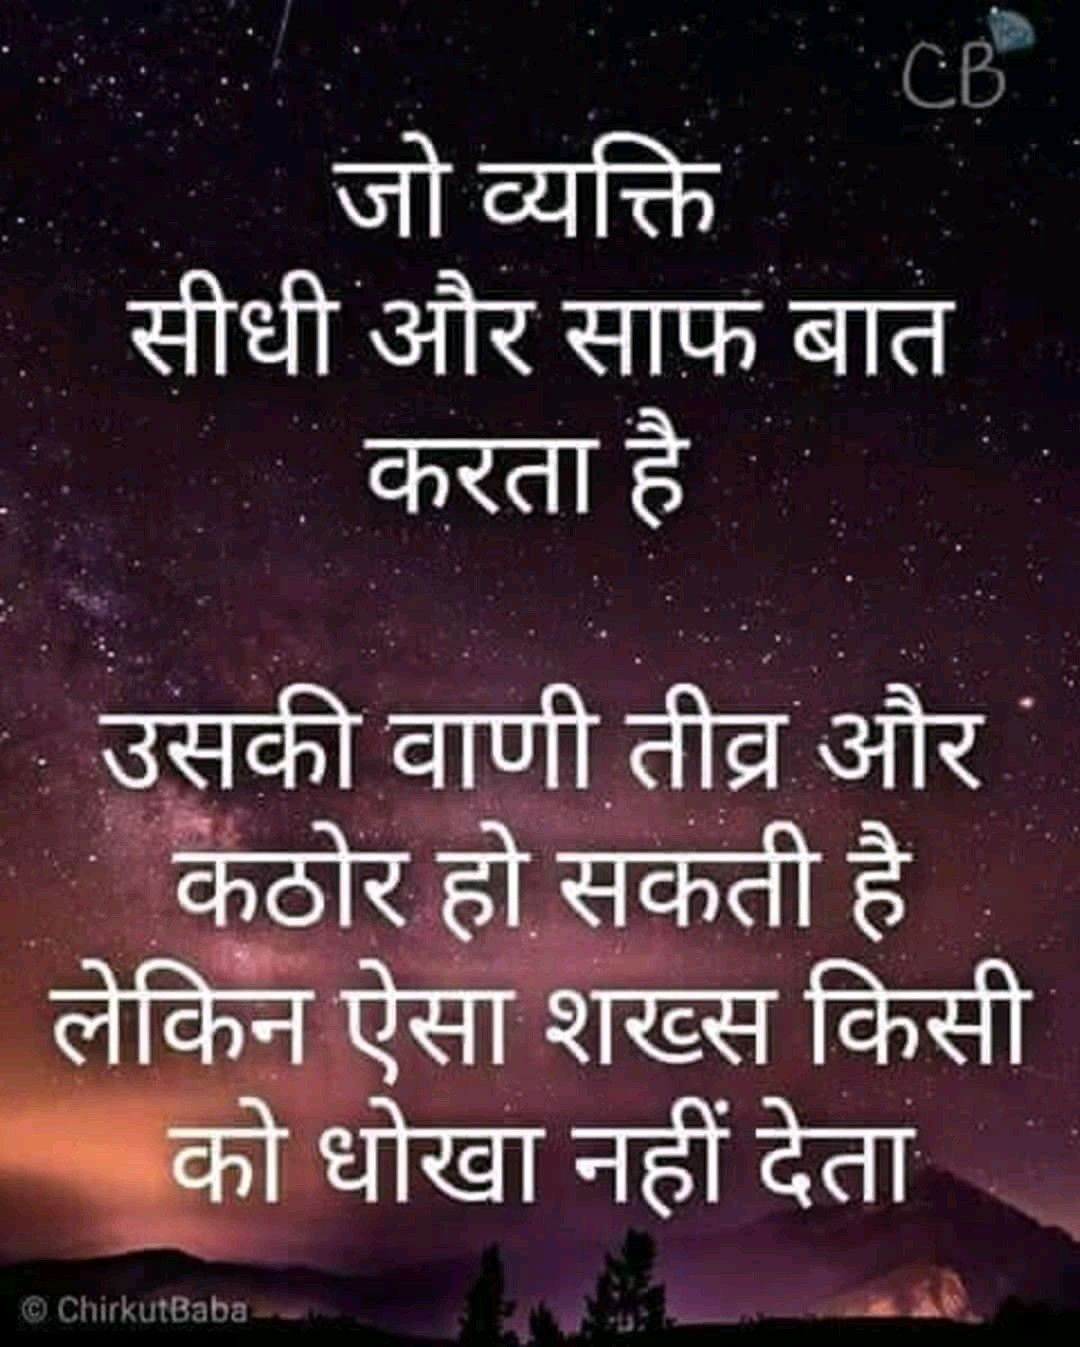 Pin By Anamika On Motivate Chanakya Quotes Karma Quotes Life